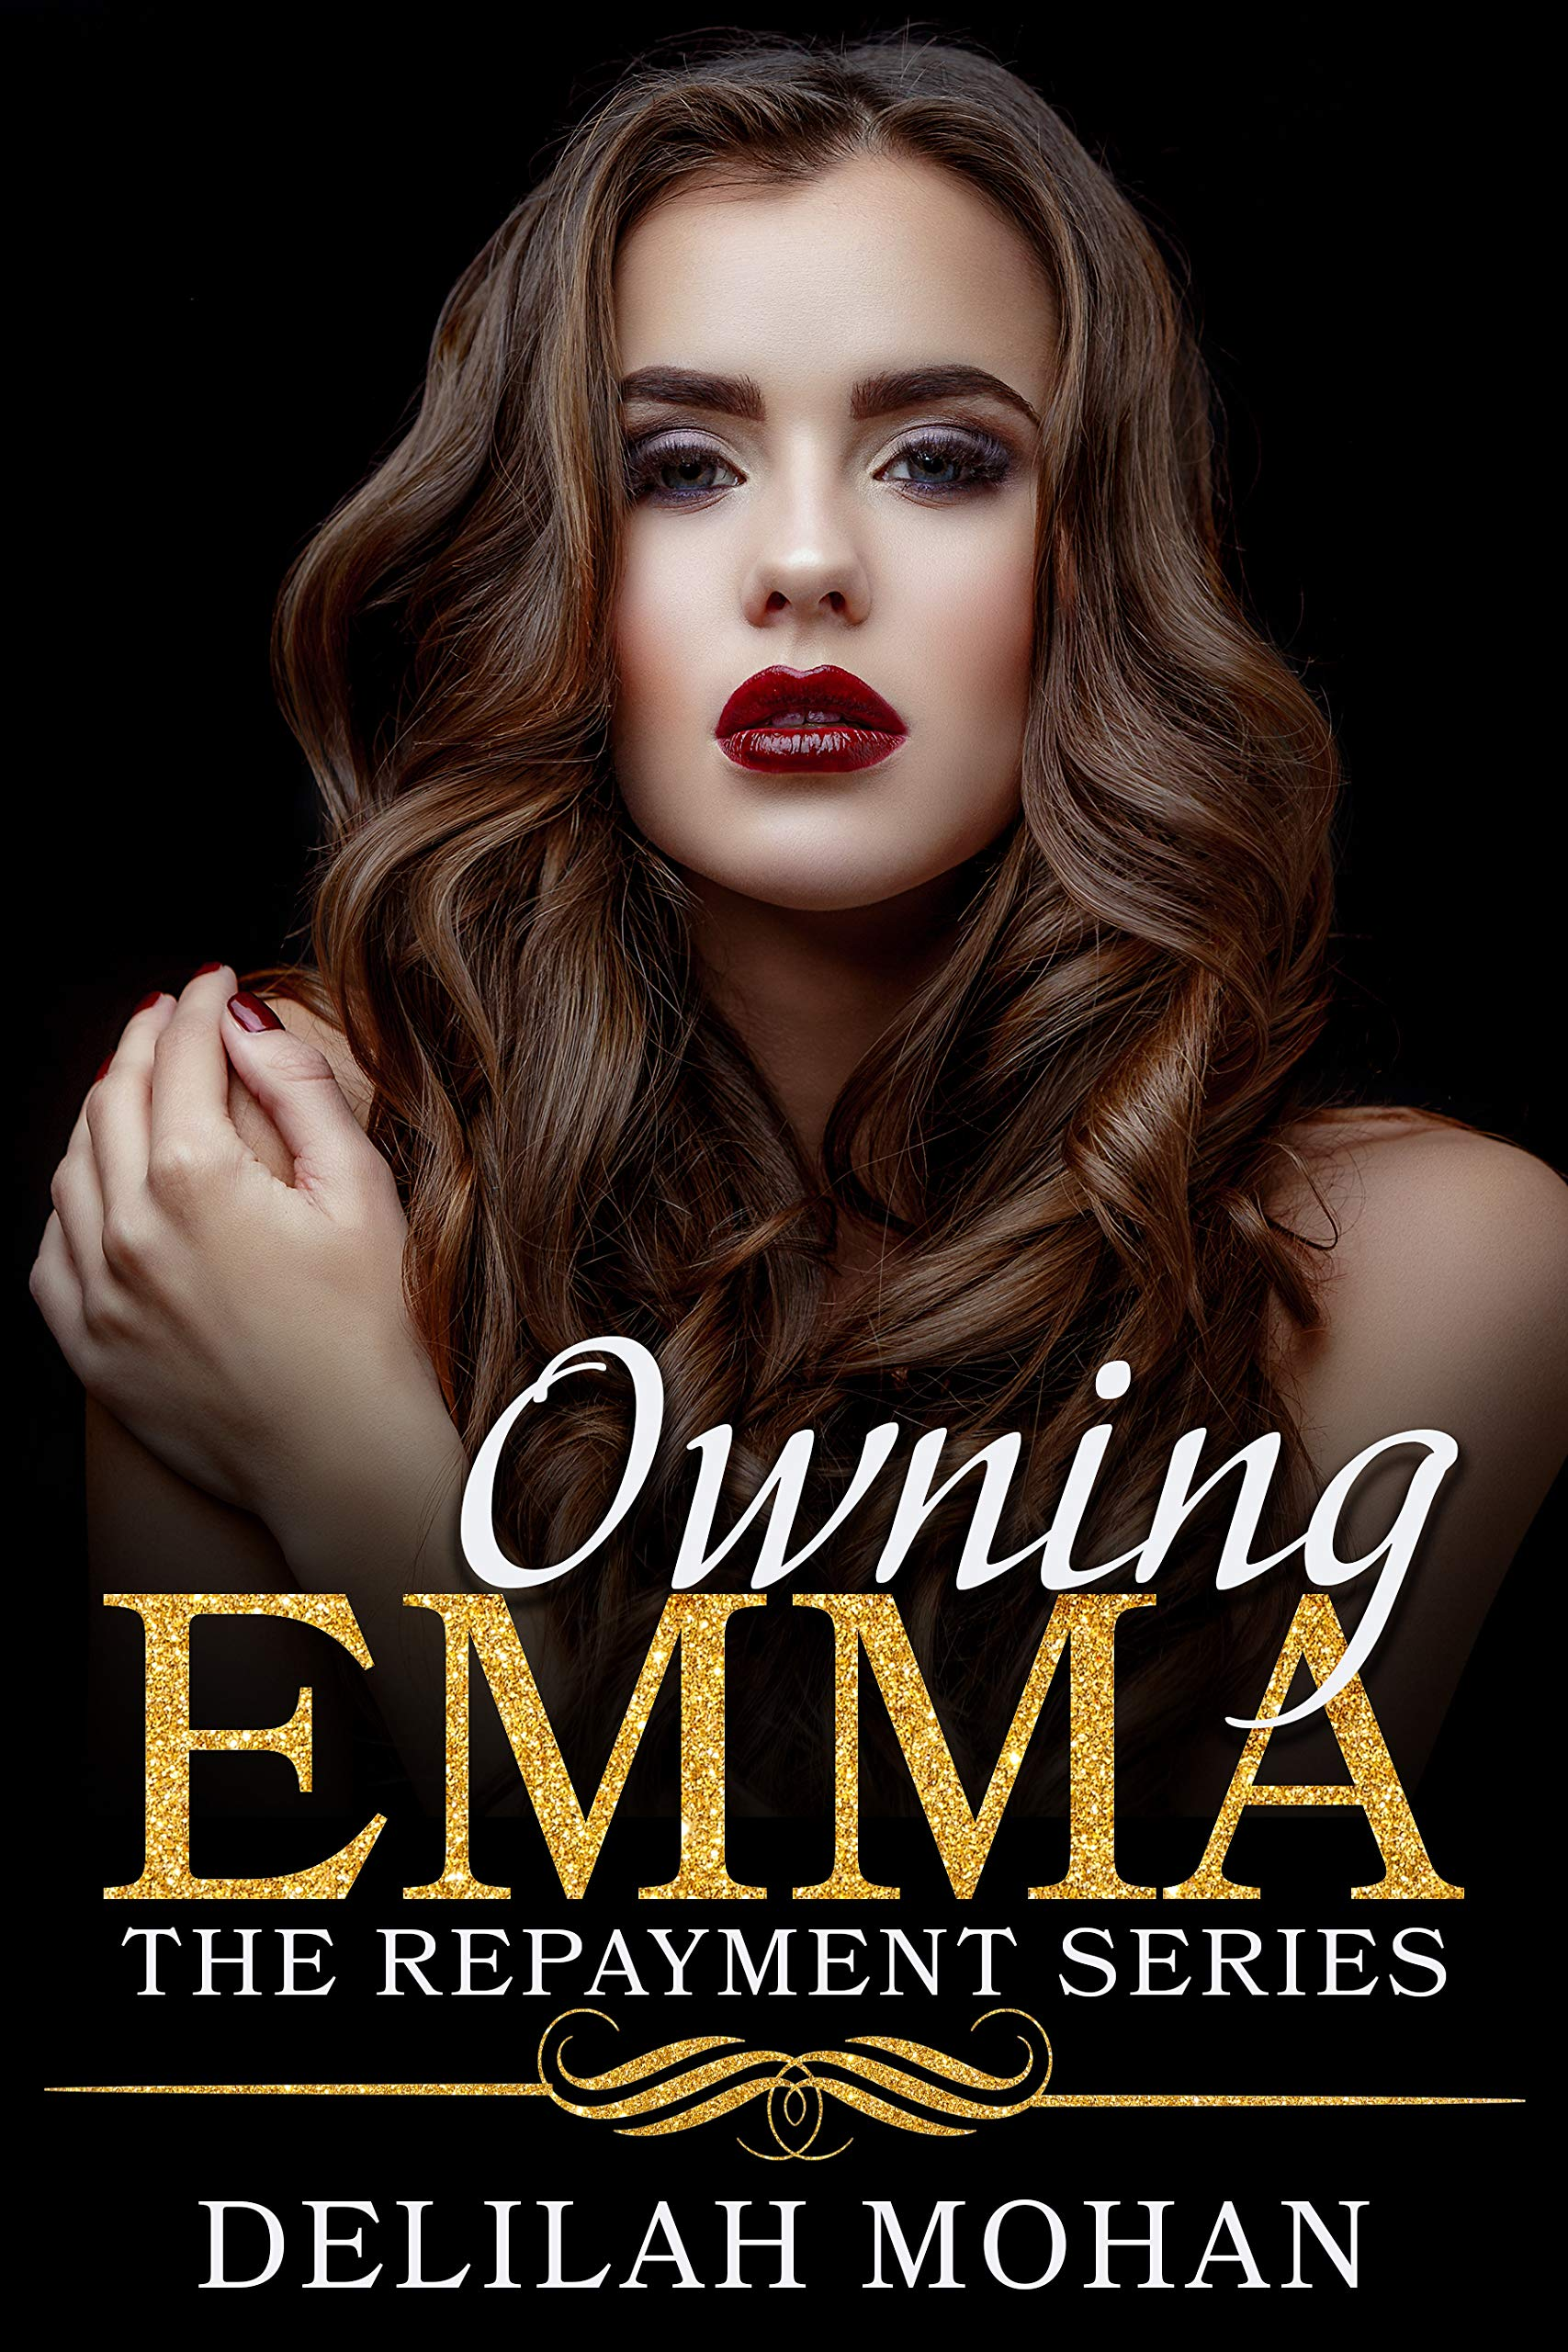 Delilah Mohan - The Repayment 2 - Owning Emma